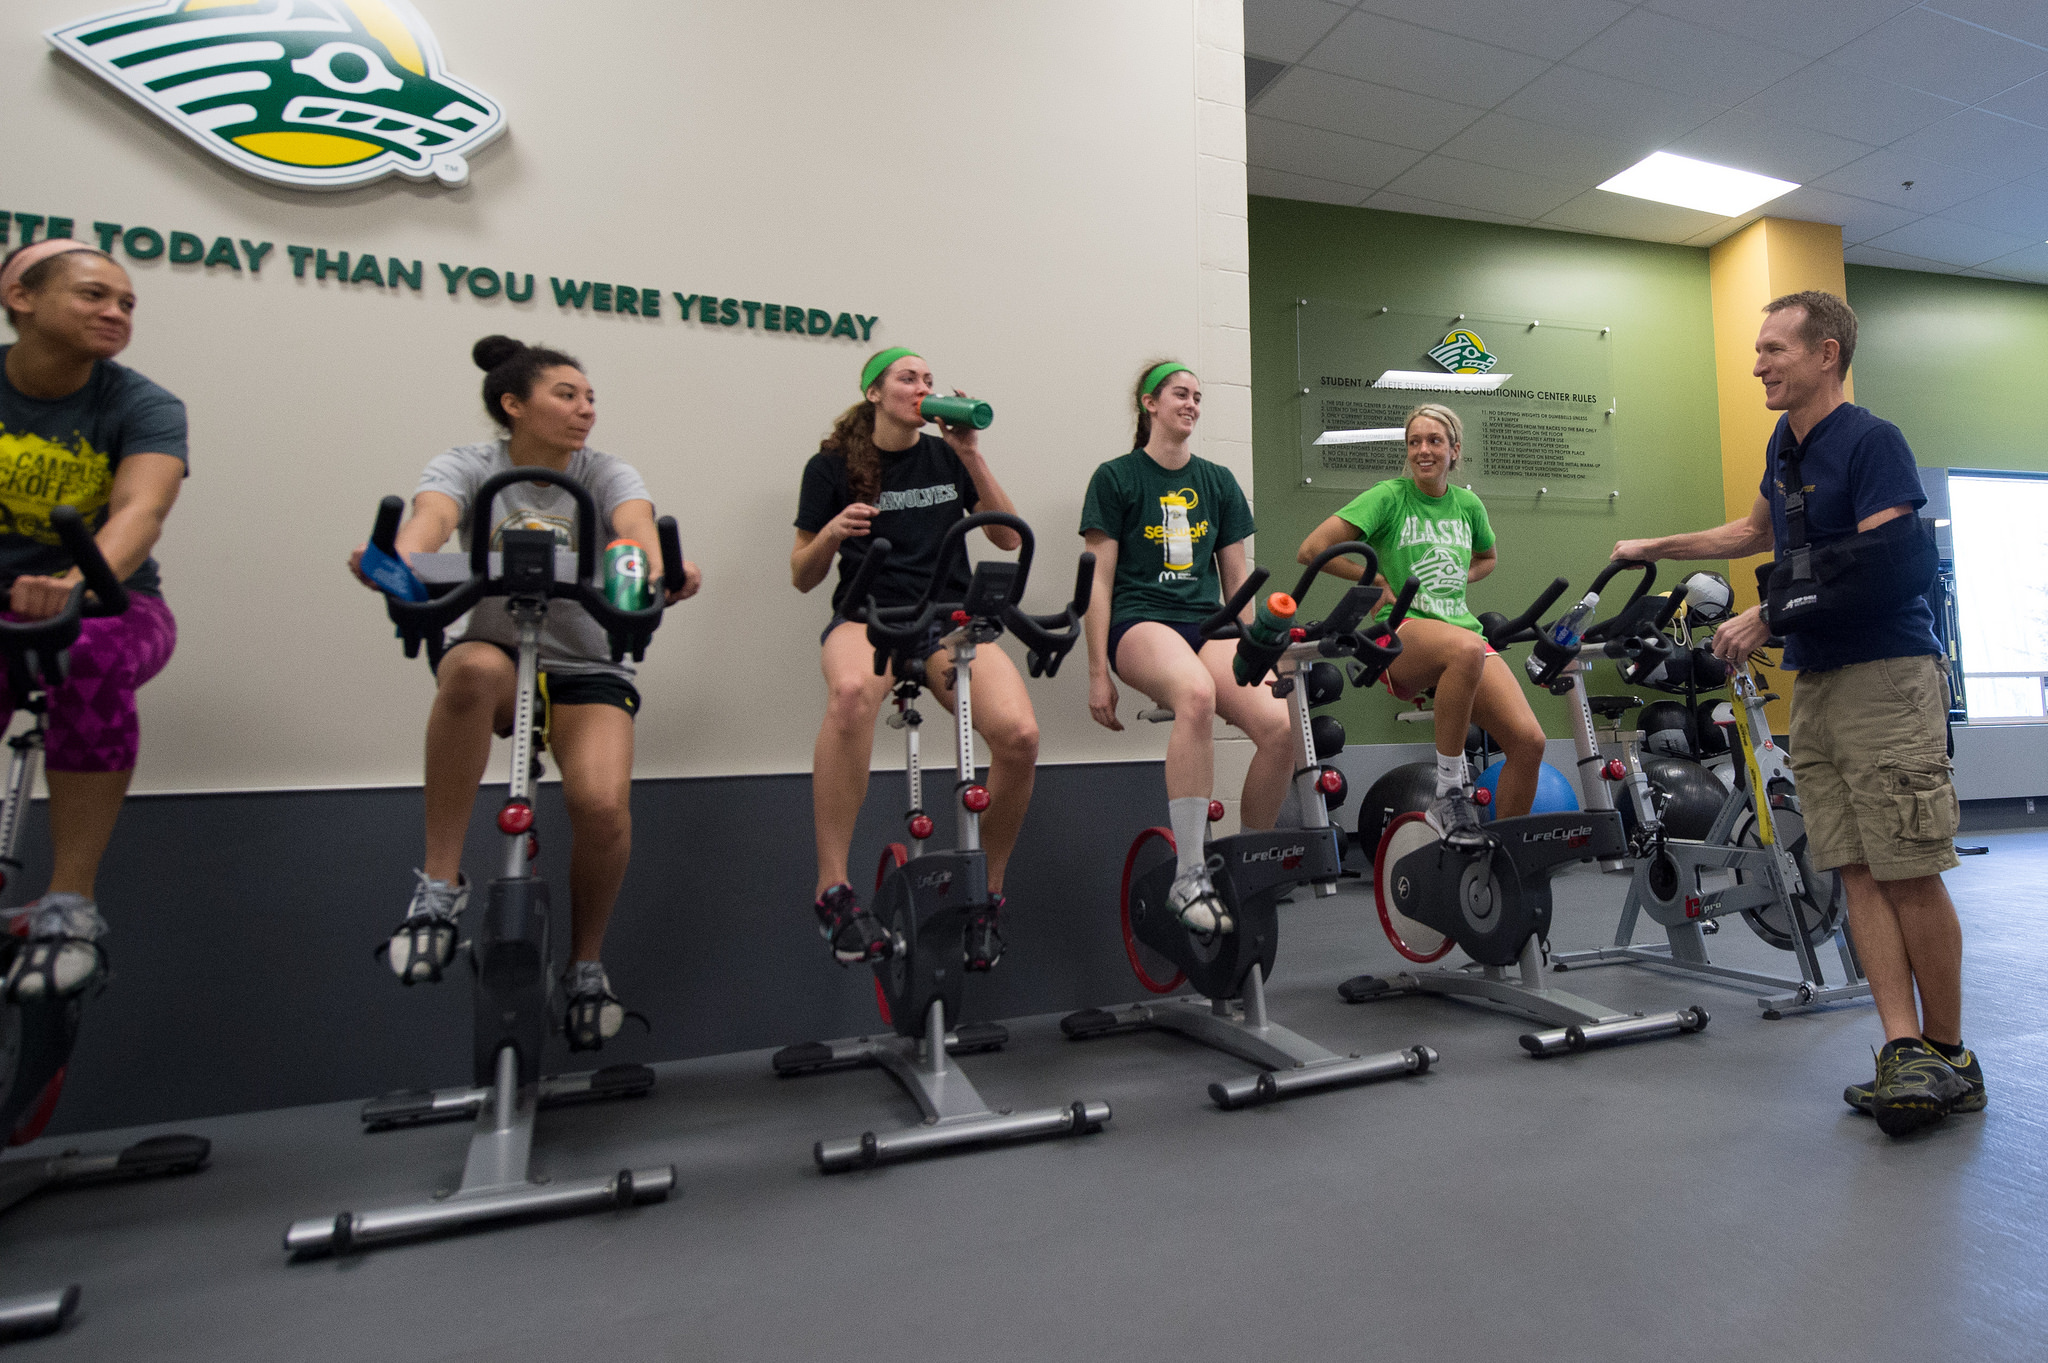 UAA Students working out on stationary bicycles